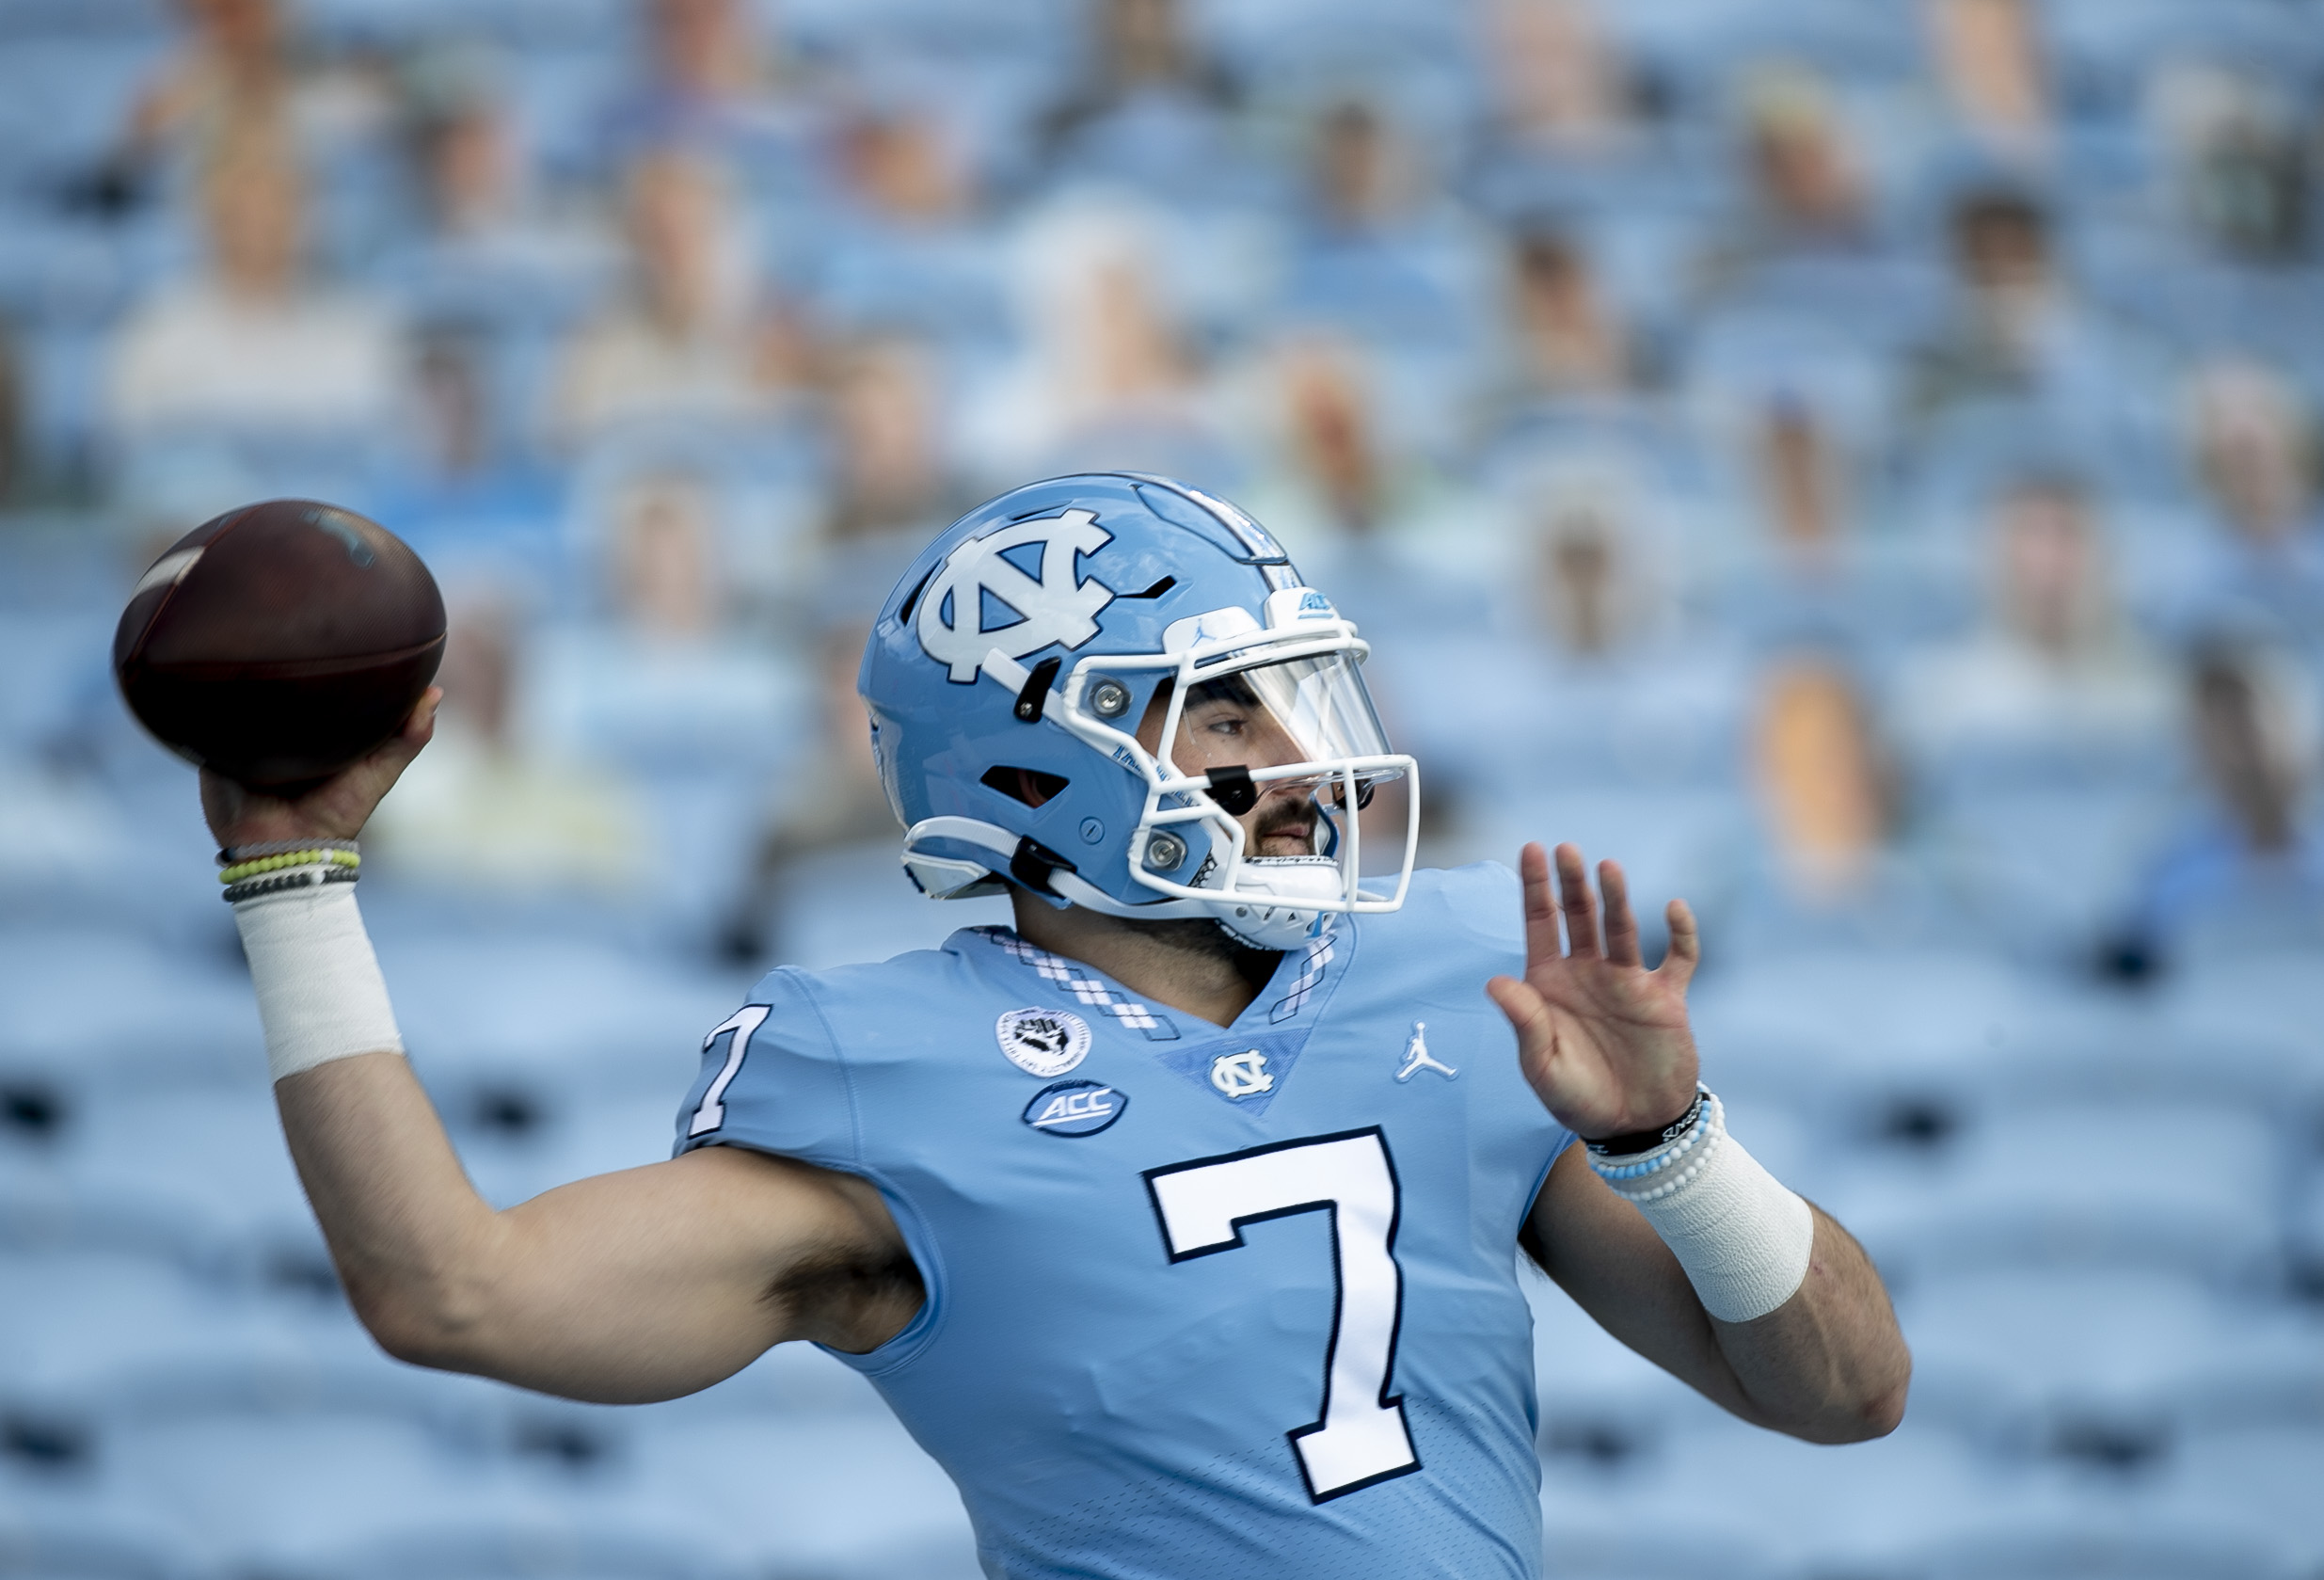 UNC Football, Basketball: How To Watch, Cord-Cutting Options and Kickoff Time - Chapelboro.com